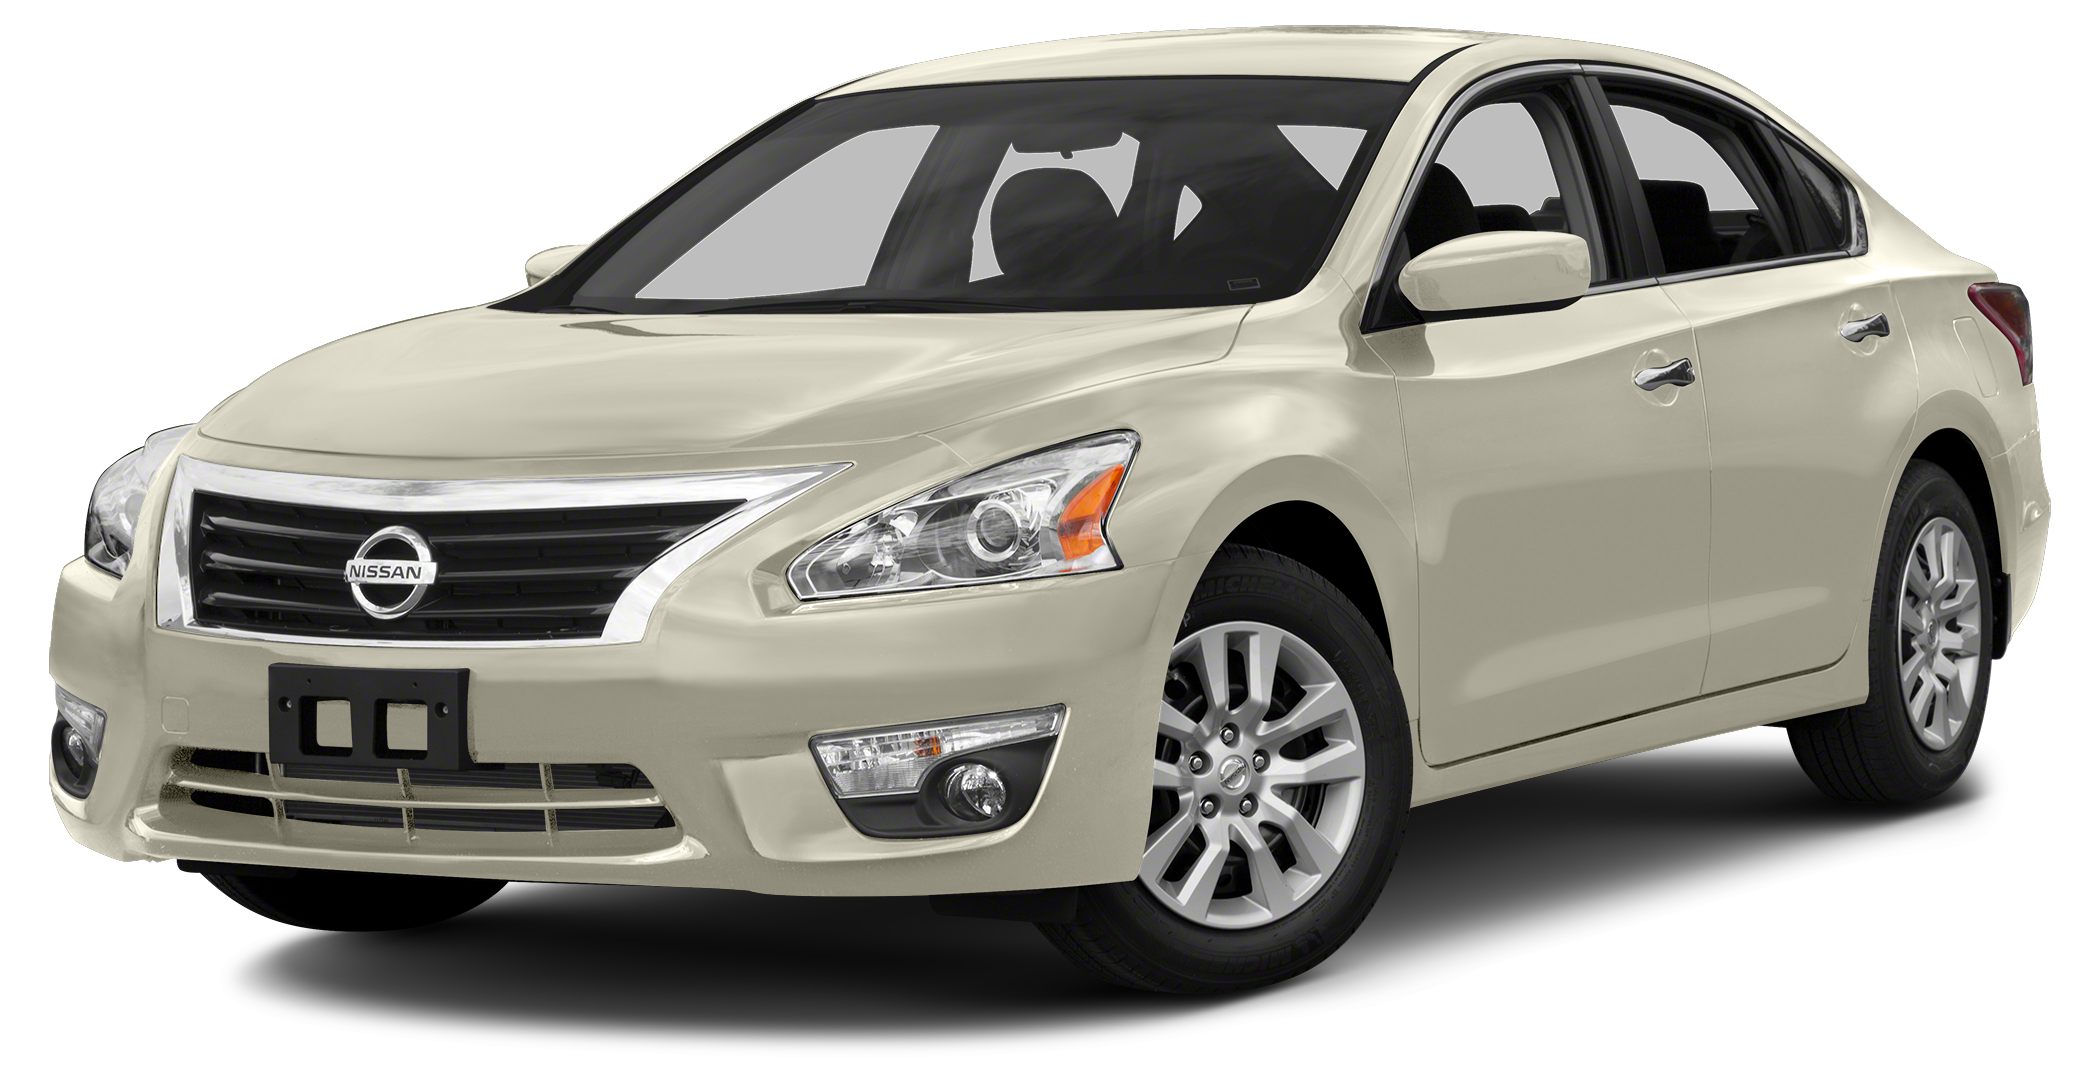 2013 Nissan Altima 25 S Altima 25 S 4D Sedan 25L I4 DOHC 16V CVT with Xtronic and FWD Look